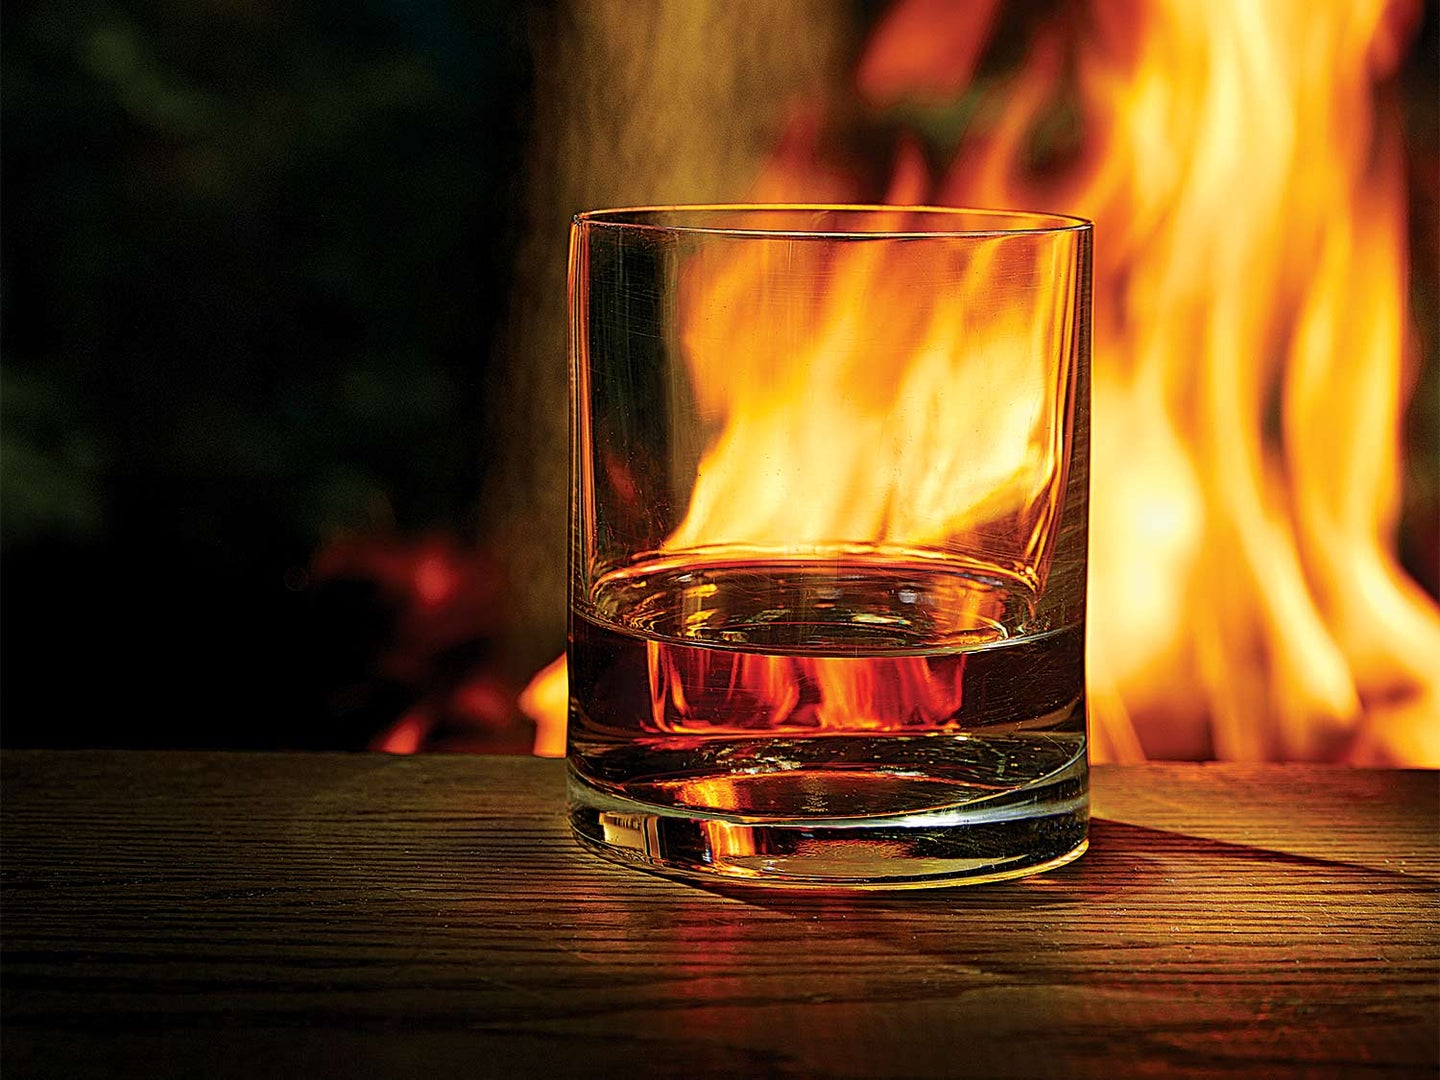 A glass of whiskey at night next to a campfire.